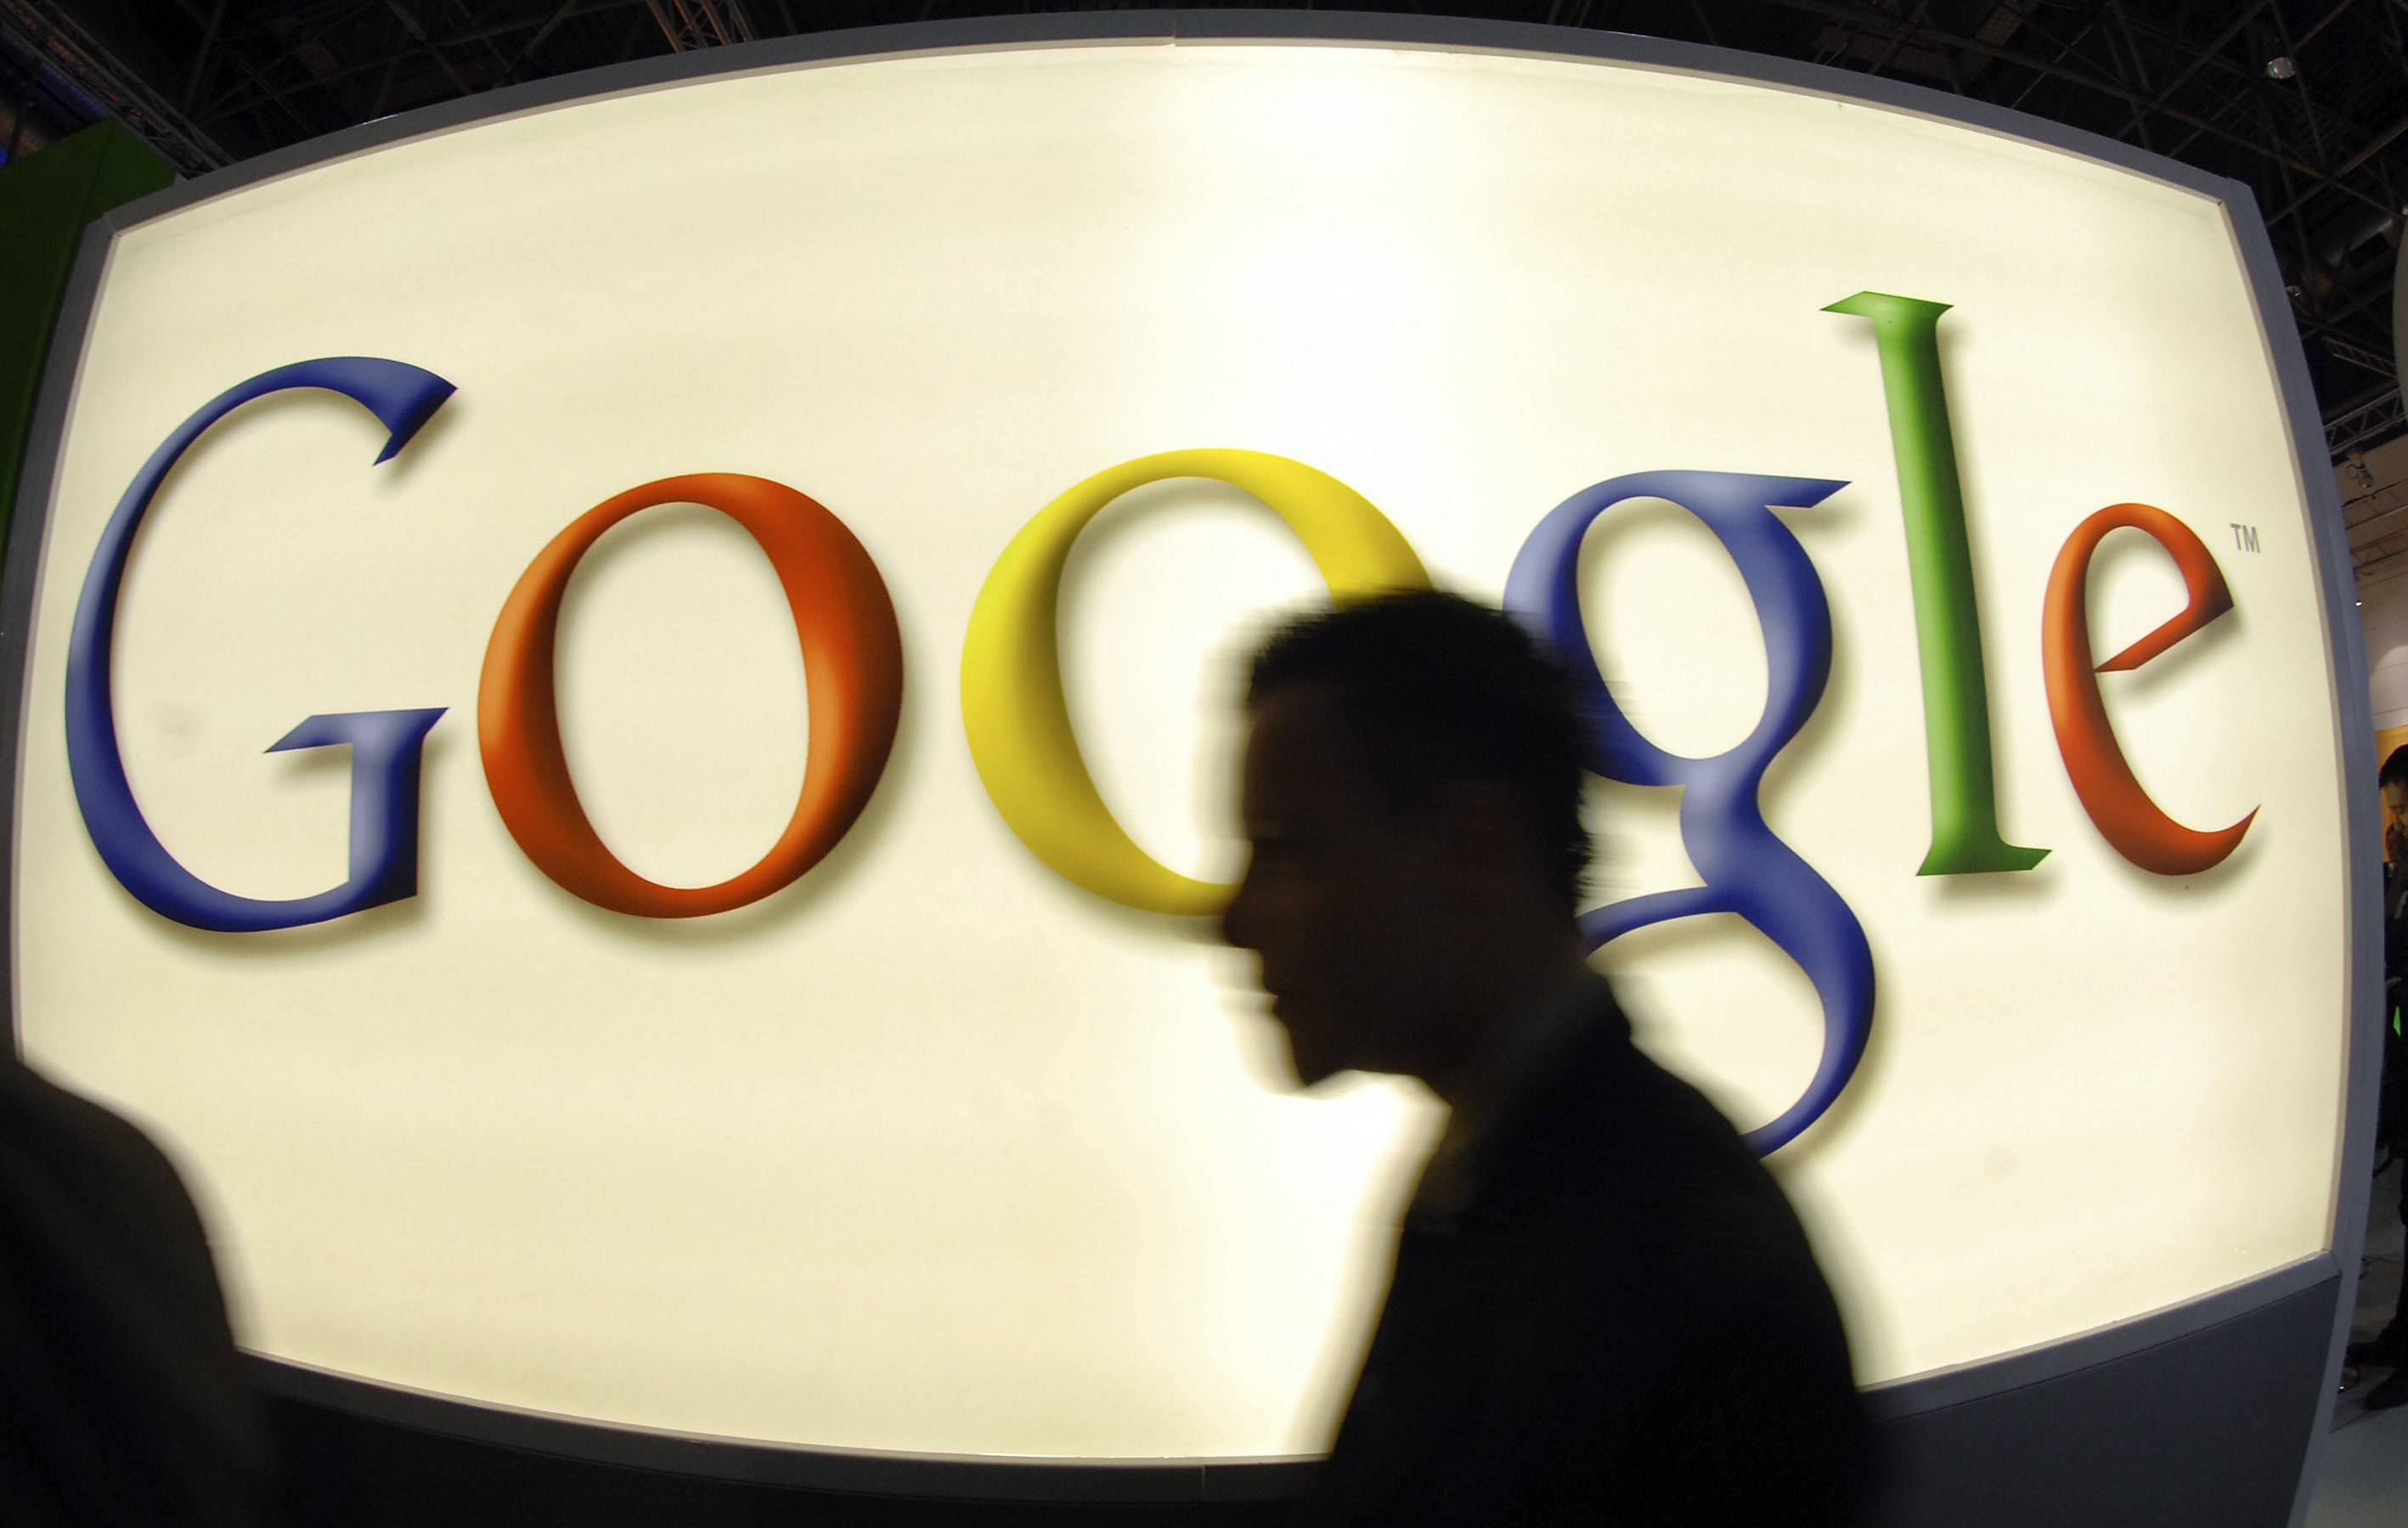 Google Inc. risks a fresh round of criticism after its attempts to apply a court ruling giving citizens the right to be forgotten backfired, Ireland's data watchdog said ahead of an industry summit with European Union privacy chiefs.